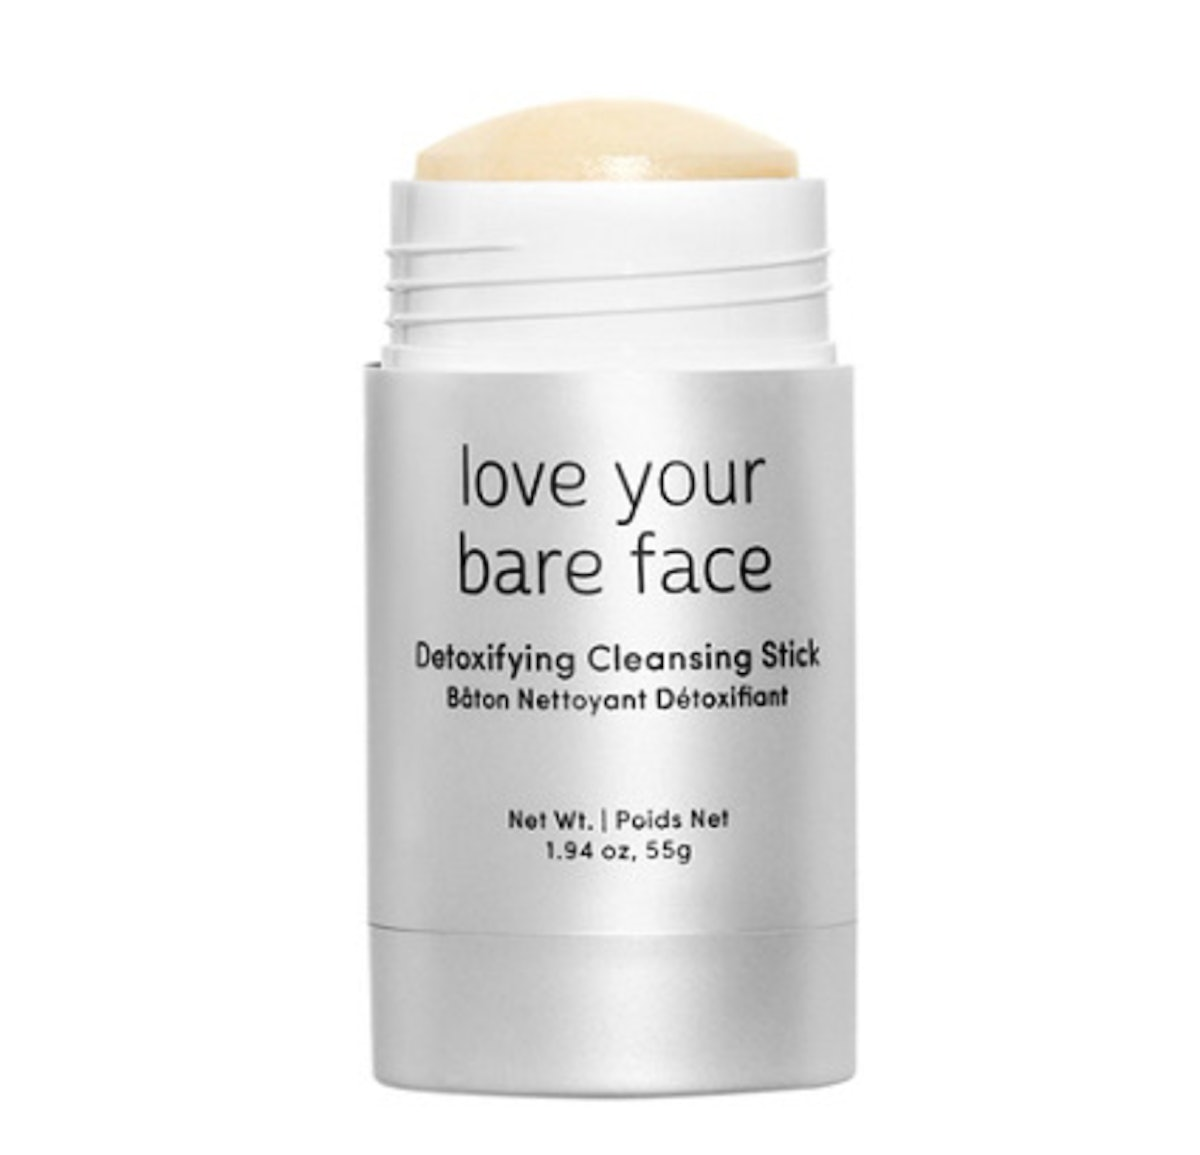 Love Your Bare Face Detoxifying Cleansing Balm Stick